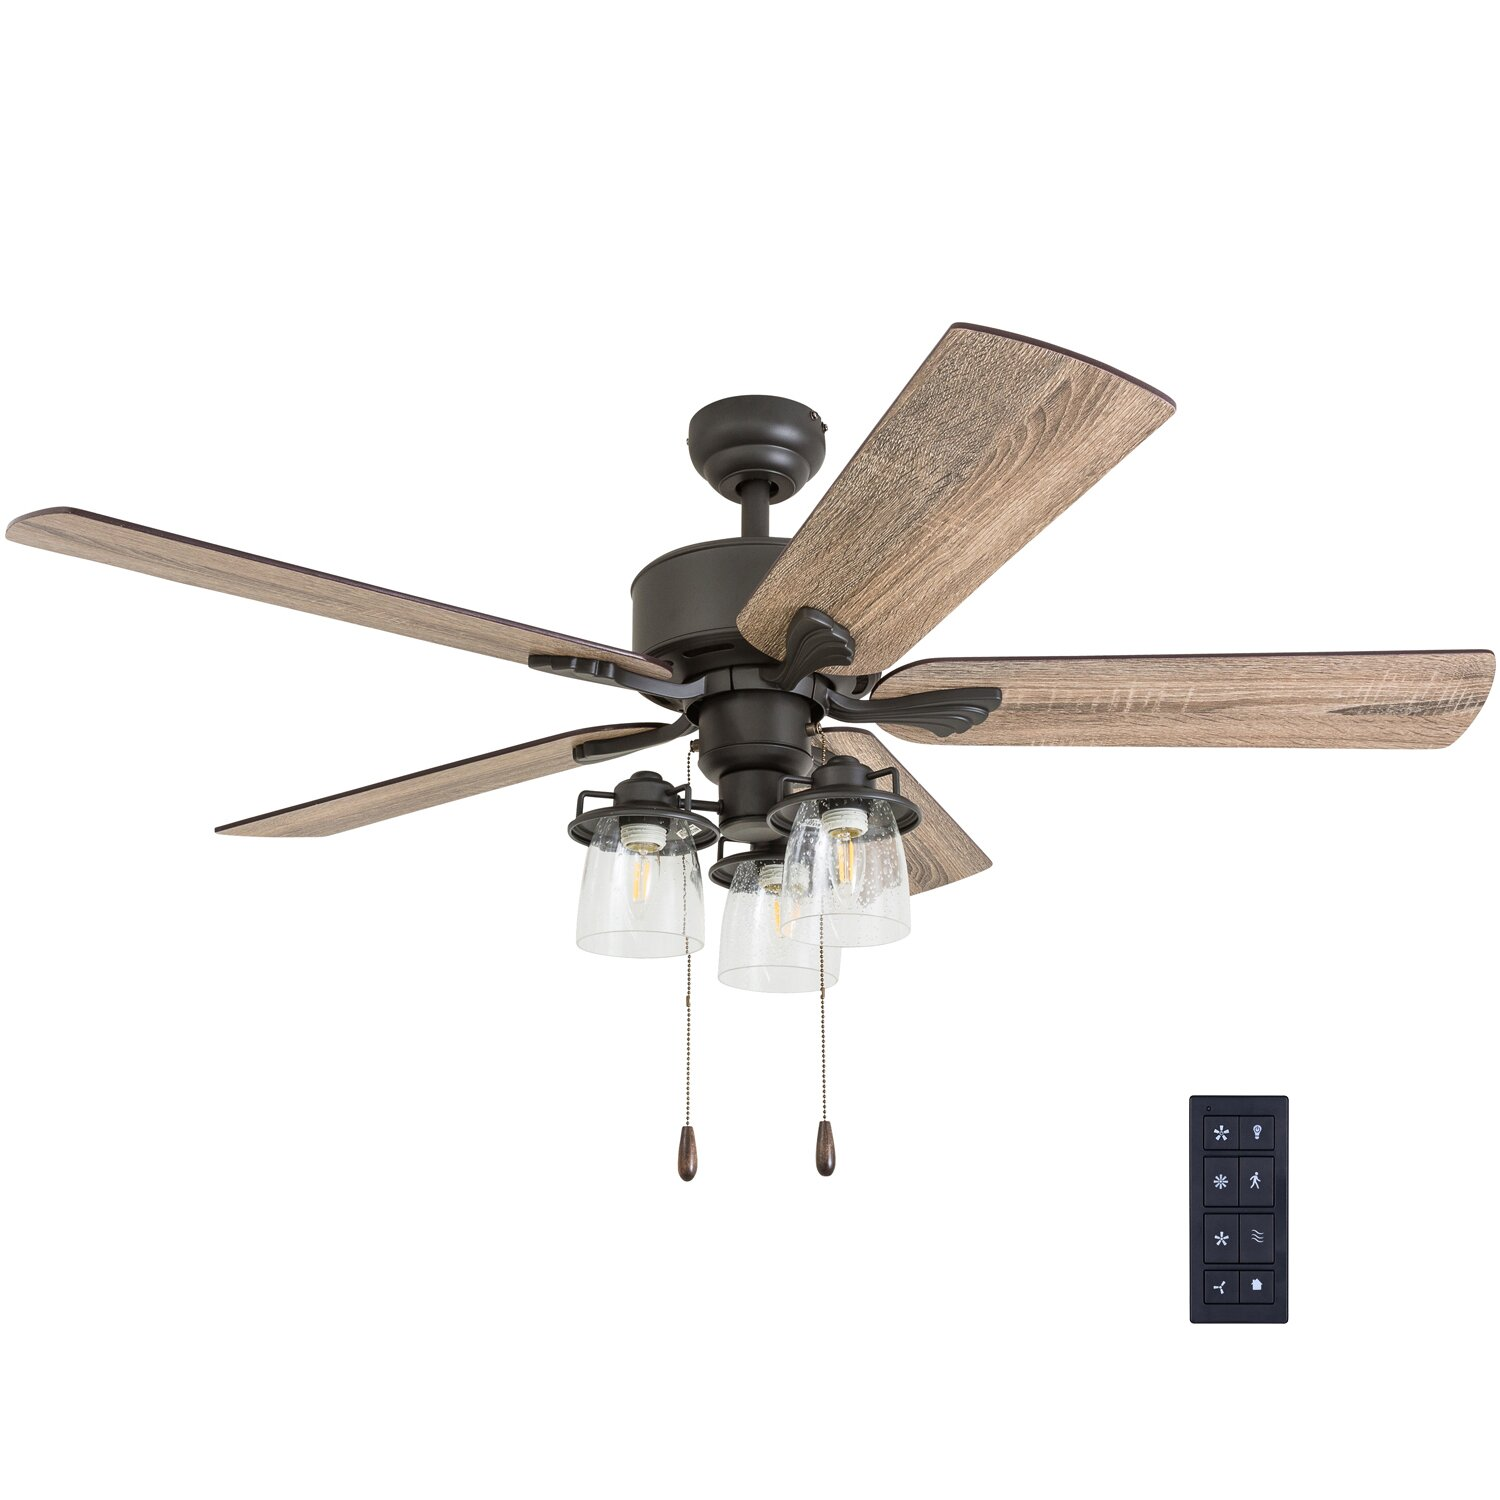 Wayfair Ceiling Fans With Remote Controls You Ll Love In 2021